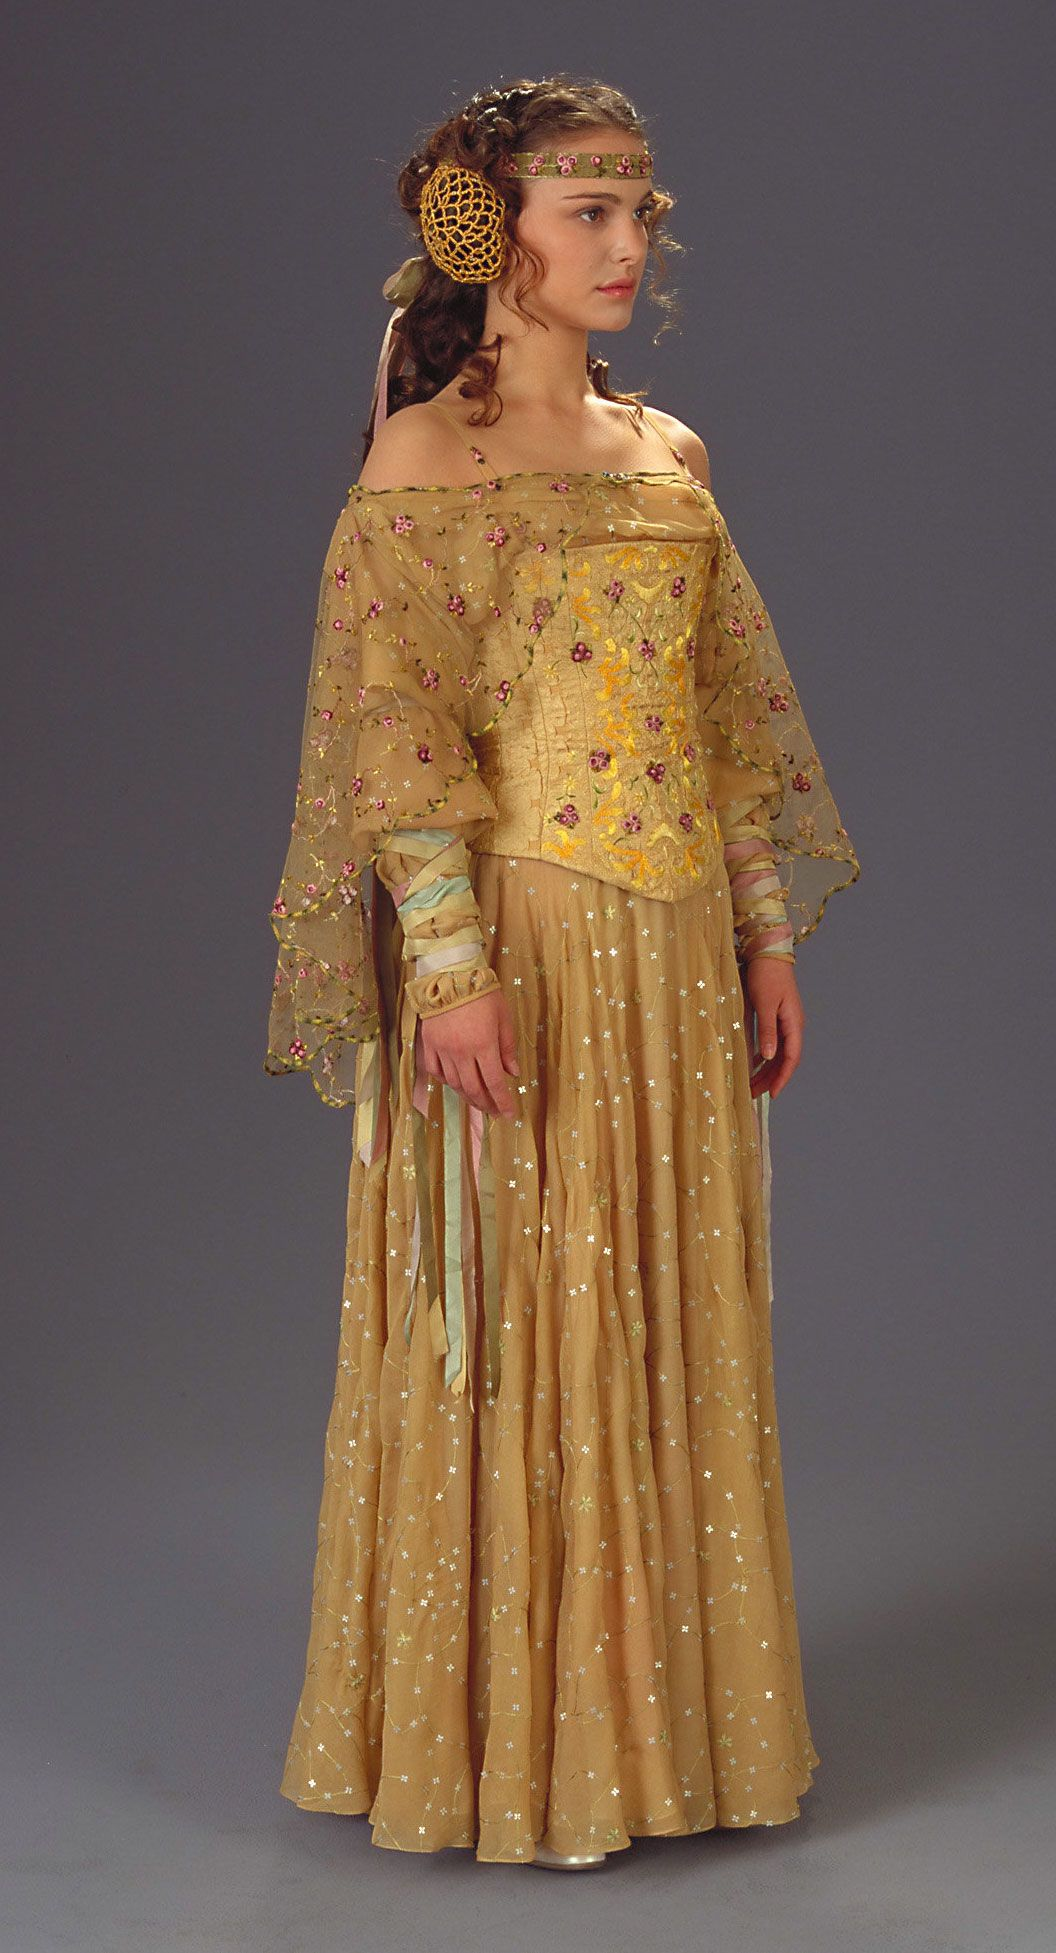 Pin By Alicia Gardner On Movie Costumes Star Wars Wedding Star Wars Outfits Star Wars Padme